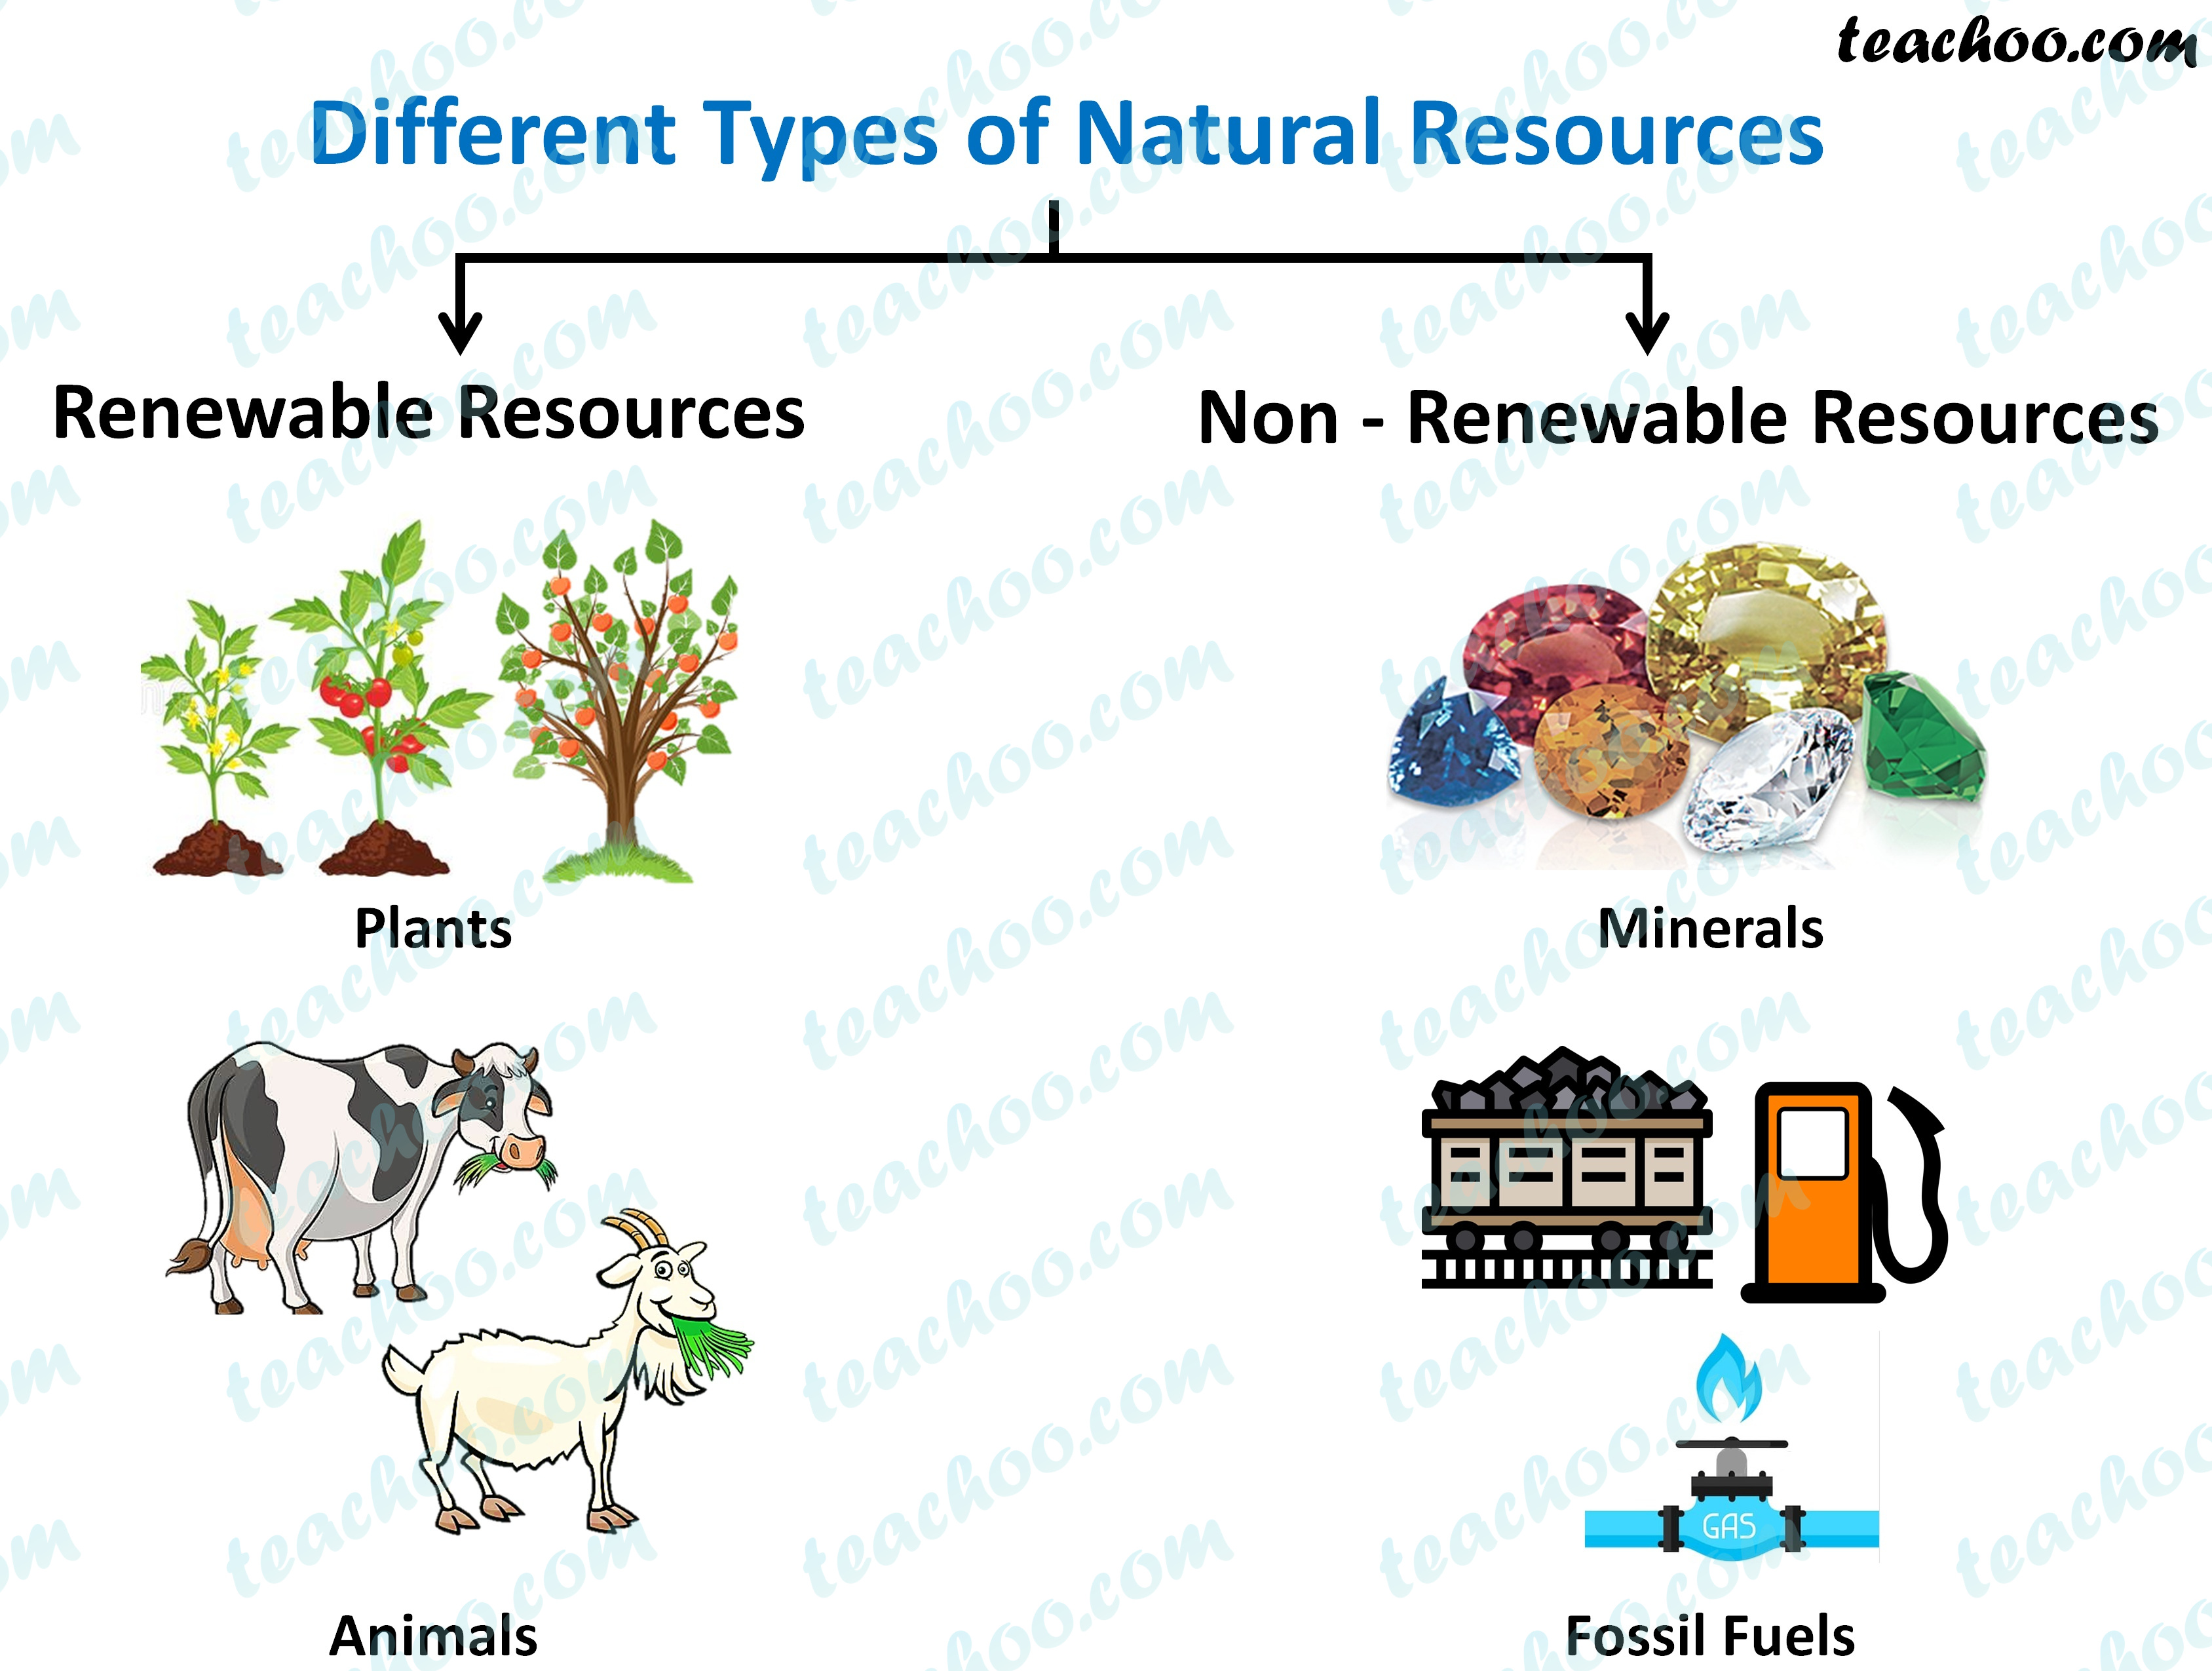 different-types-of-natural-resources---teachoo.jpg